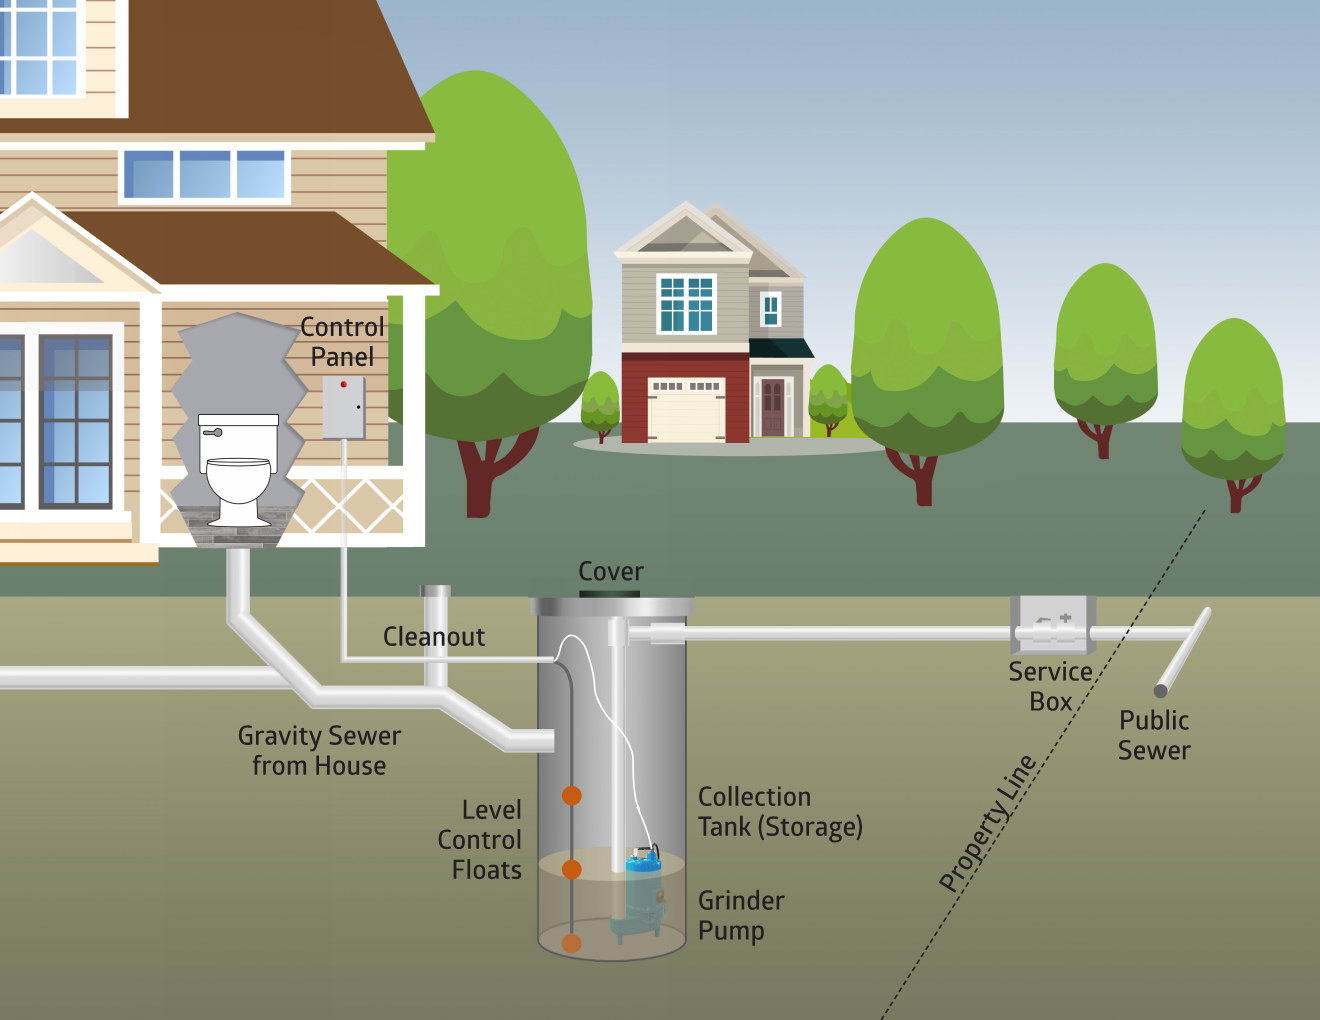 Low Pressure Sewer diagram: Gravity Sewer from House + Cleanout → Collection Tank (Storage) with Grinder Pump and Level Control Floats Operated by Control Panel → Service Box → Public Sewer